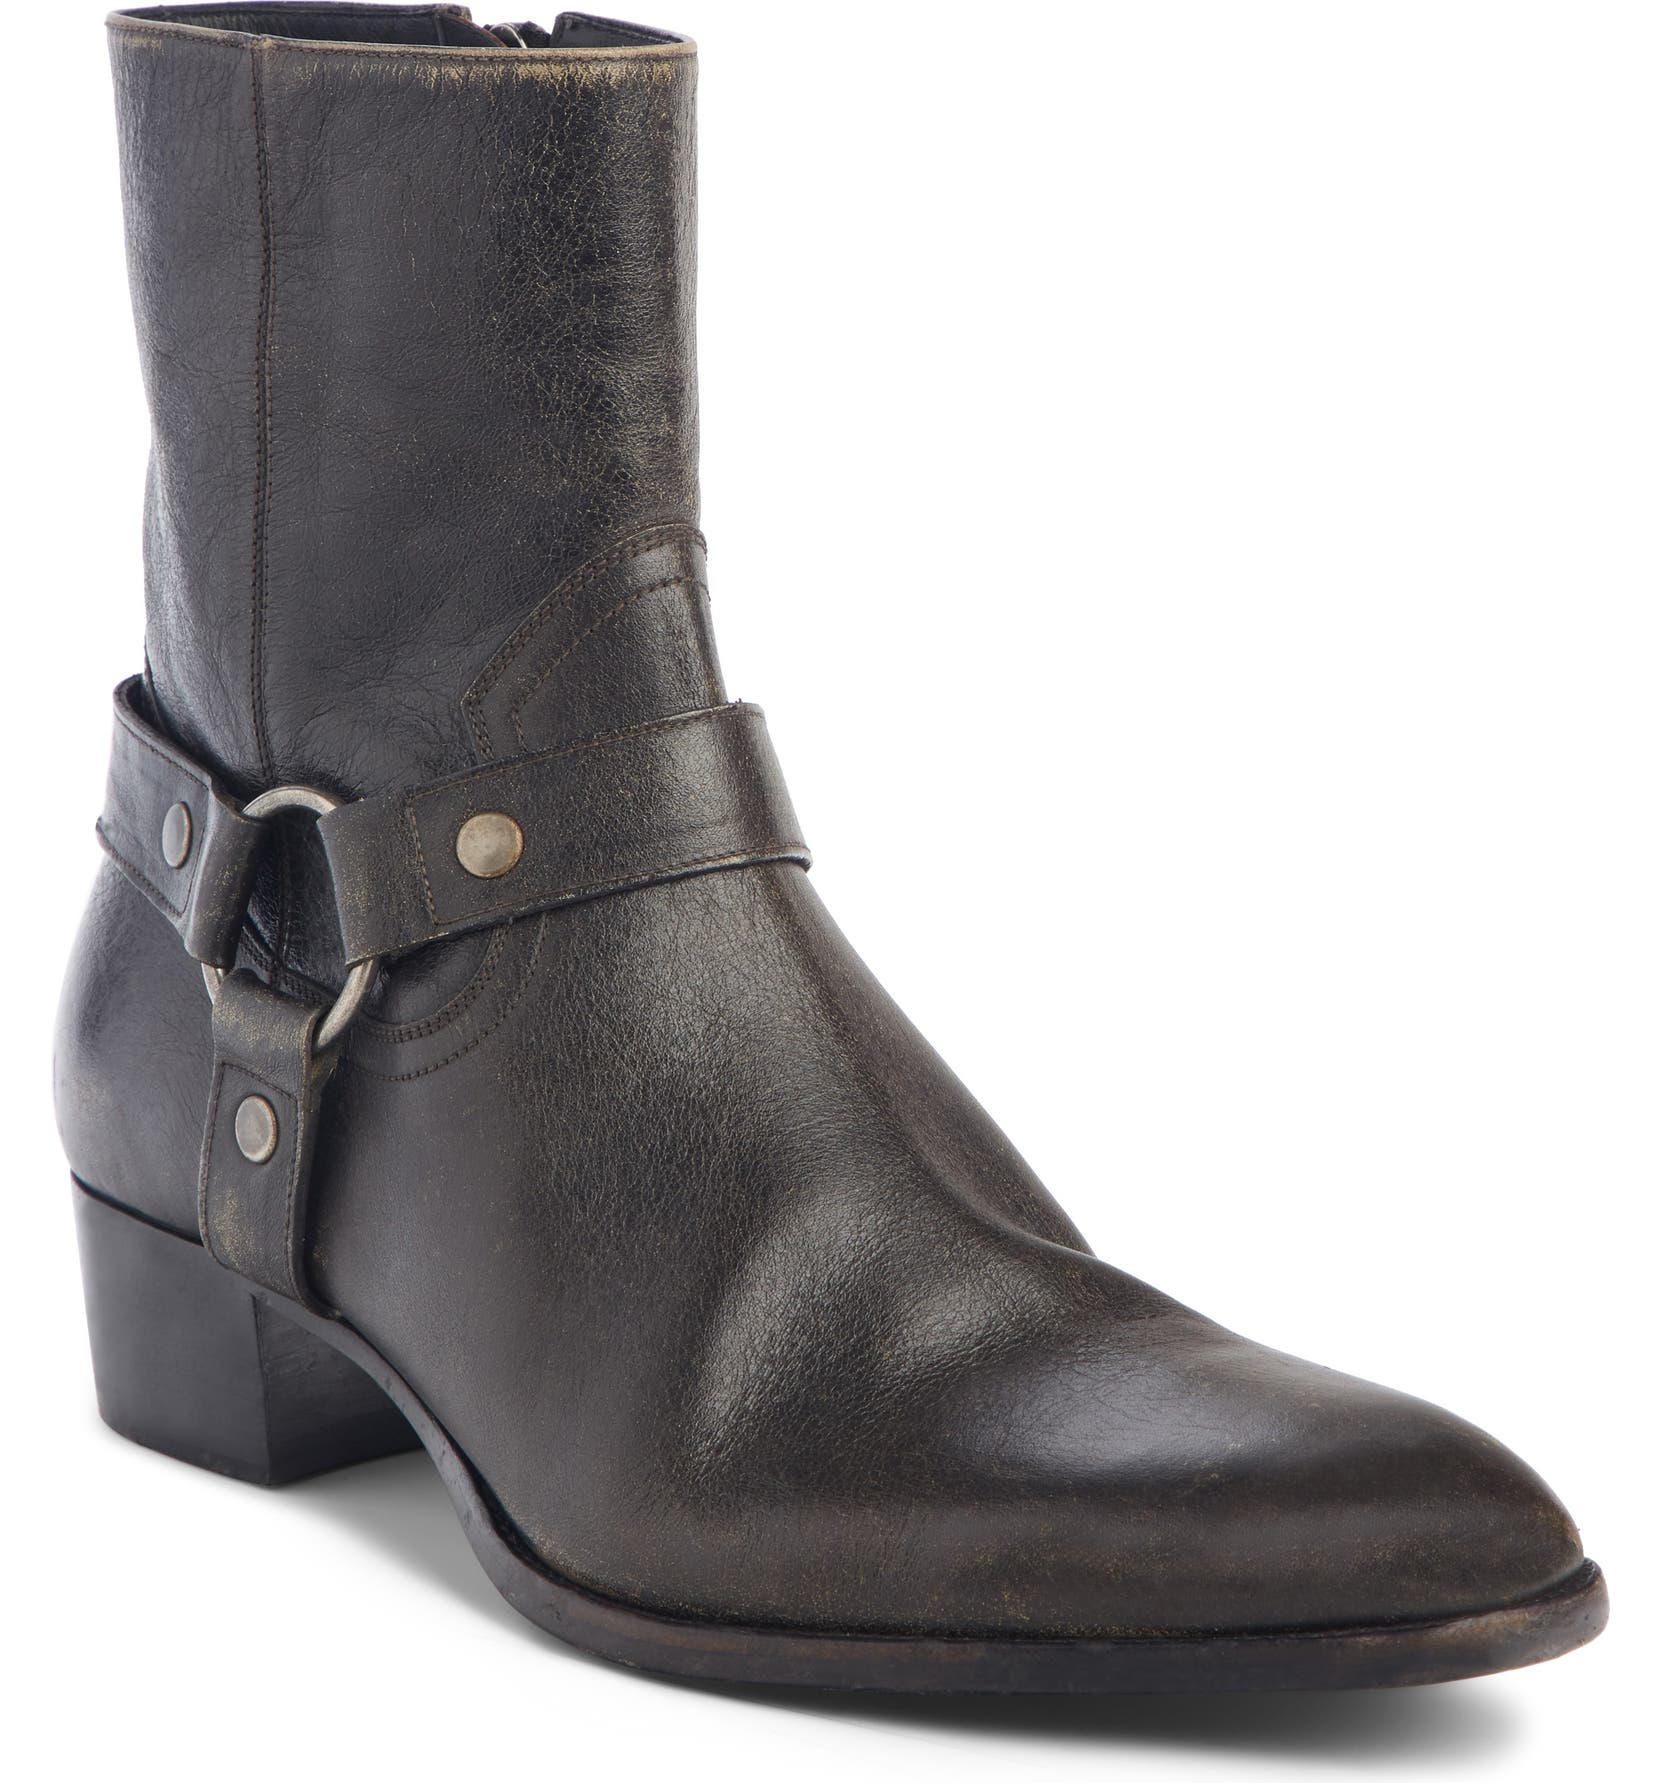 19c511f2f73 Saint Laurent Wyatt Harness Boot (Men) | Nordstrom